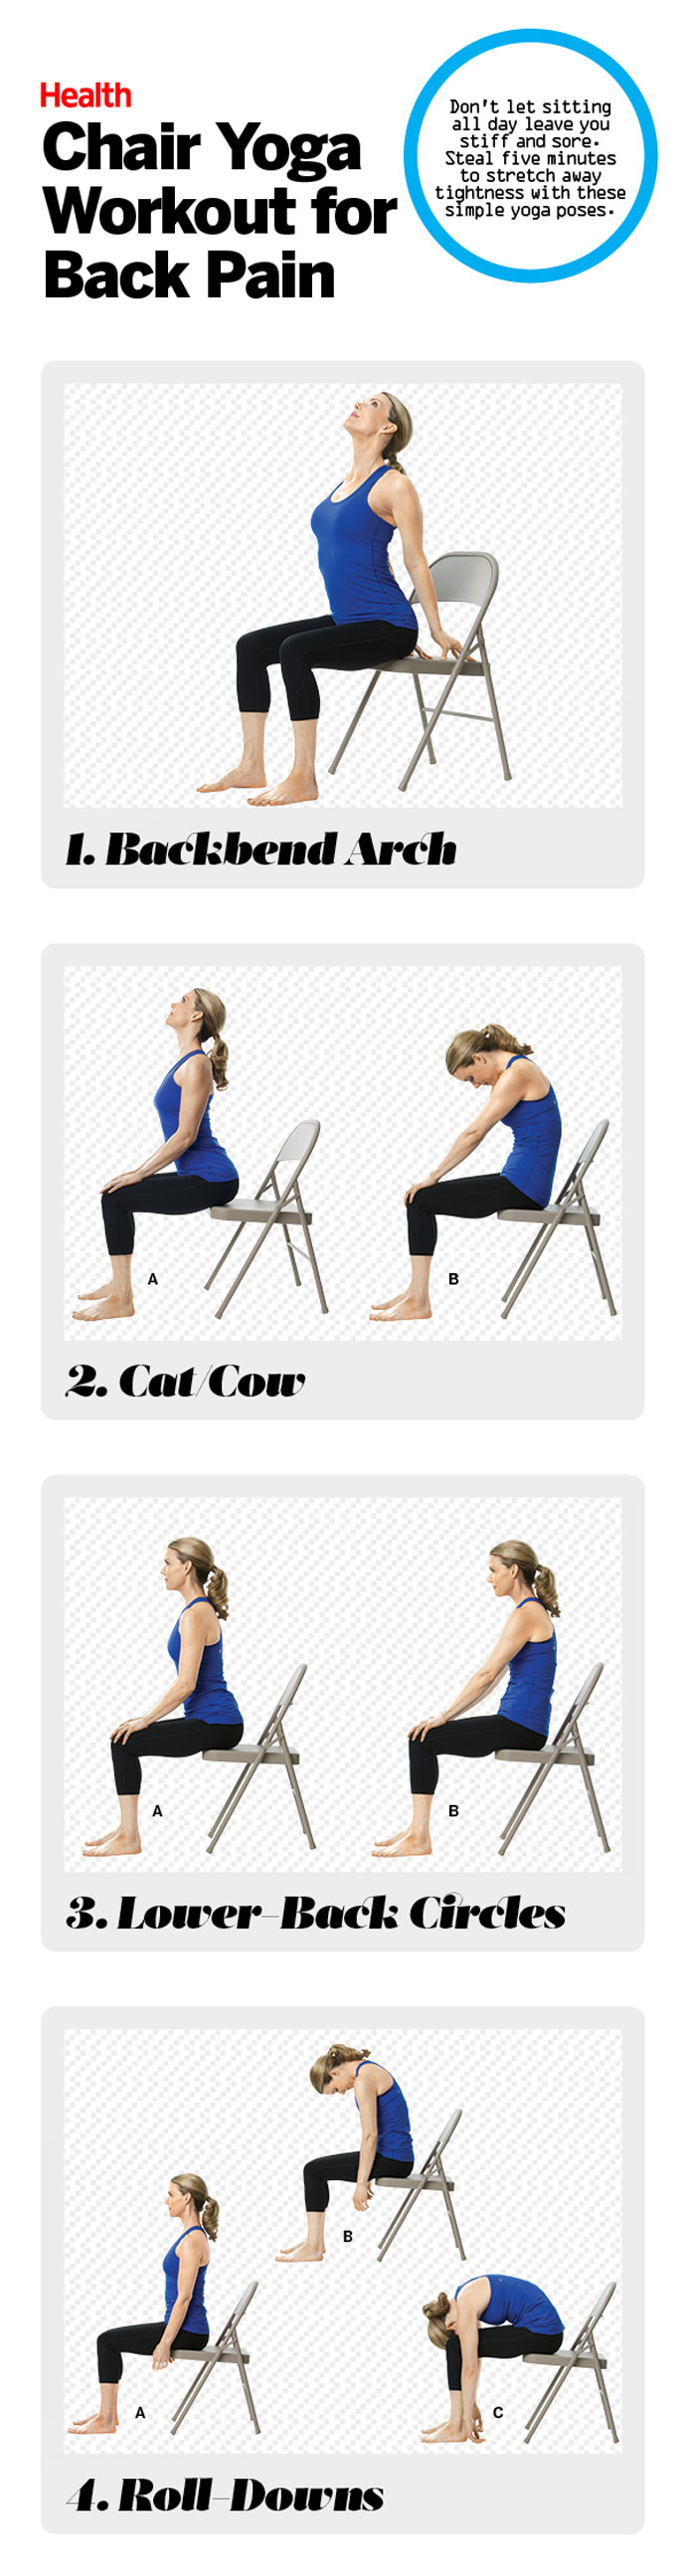 photograph regarding Printable Chair Yoga Routines called The Least complicated Chair Yoga Moves towards Fight Back again Suffering - Conditioning